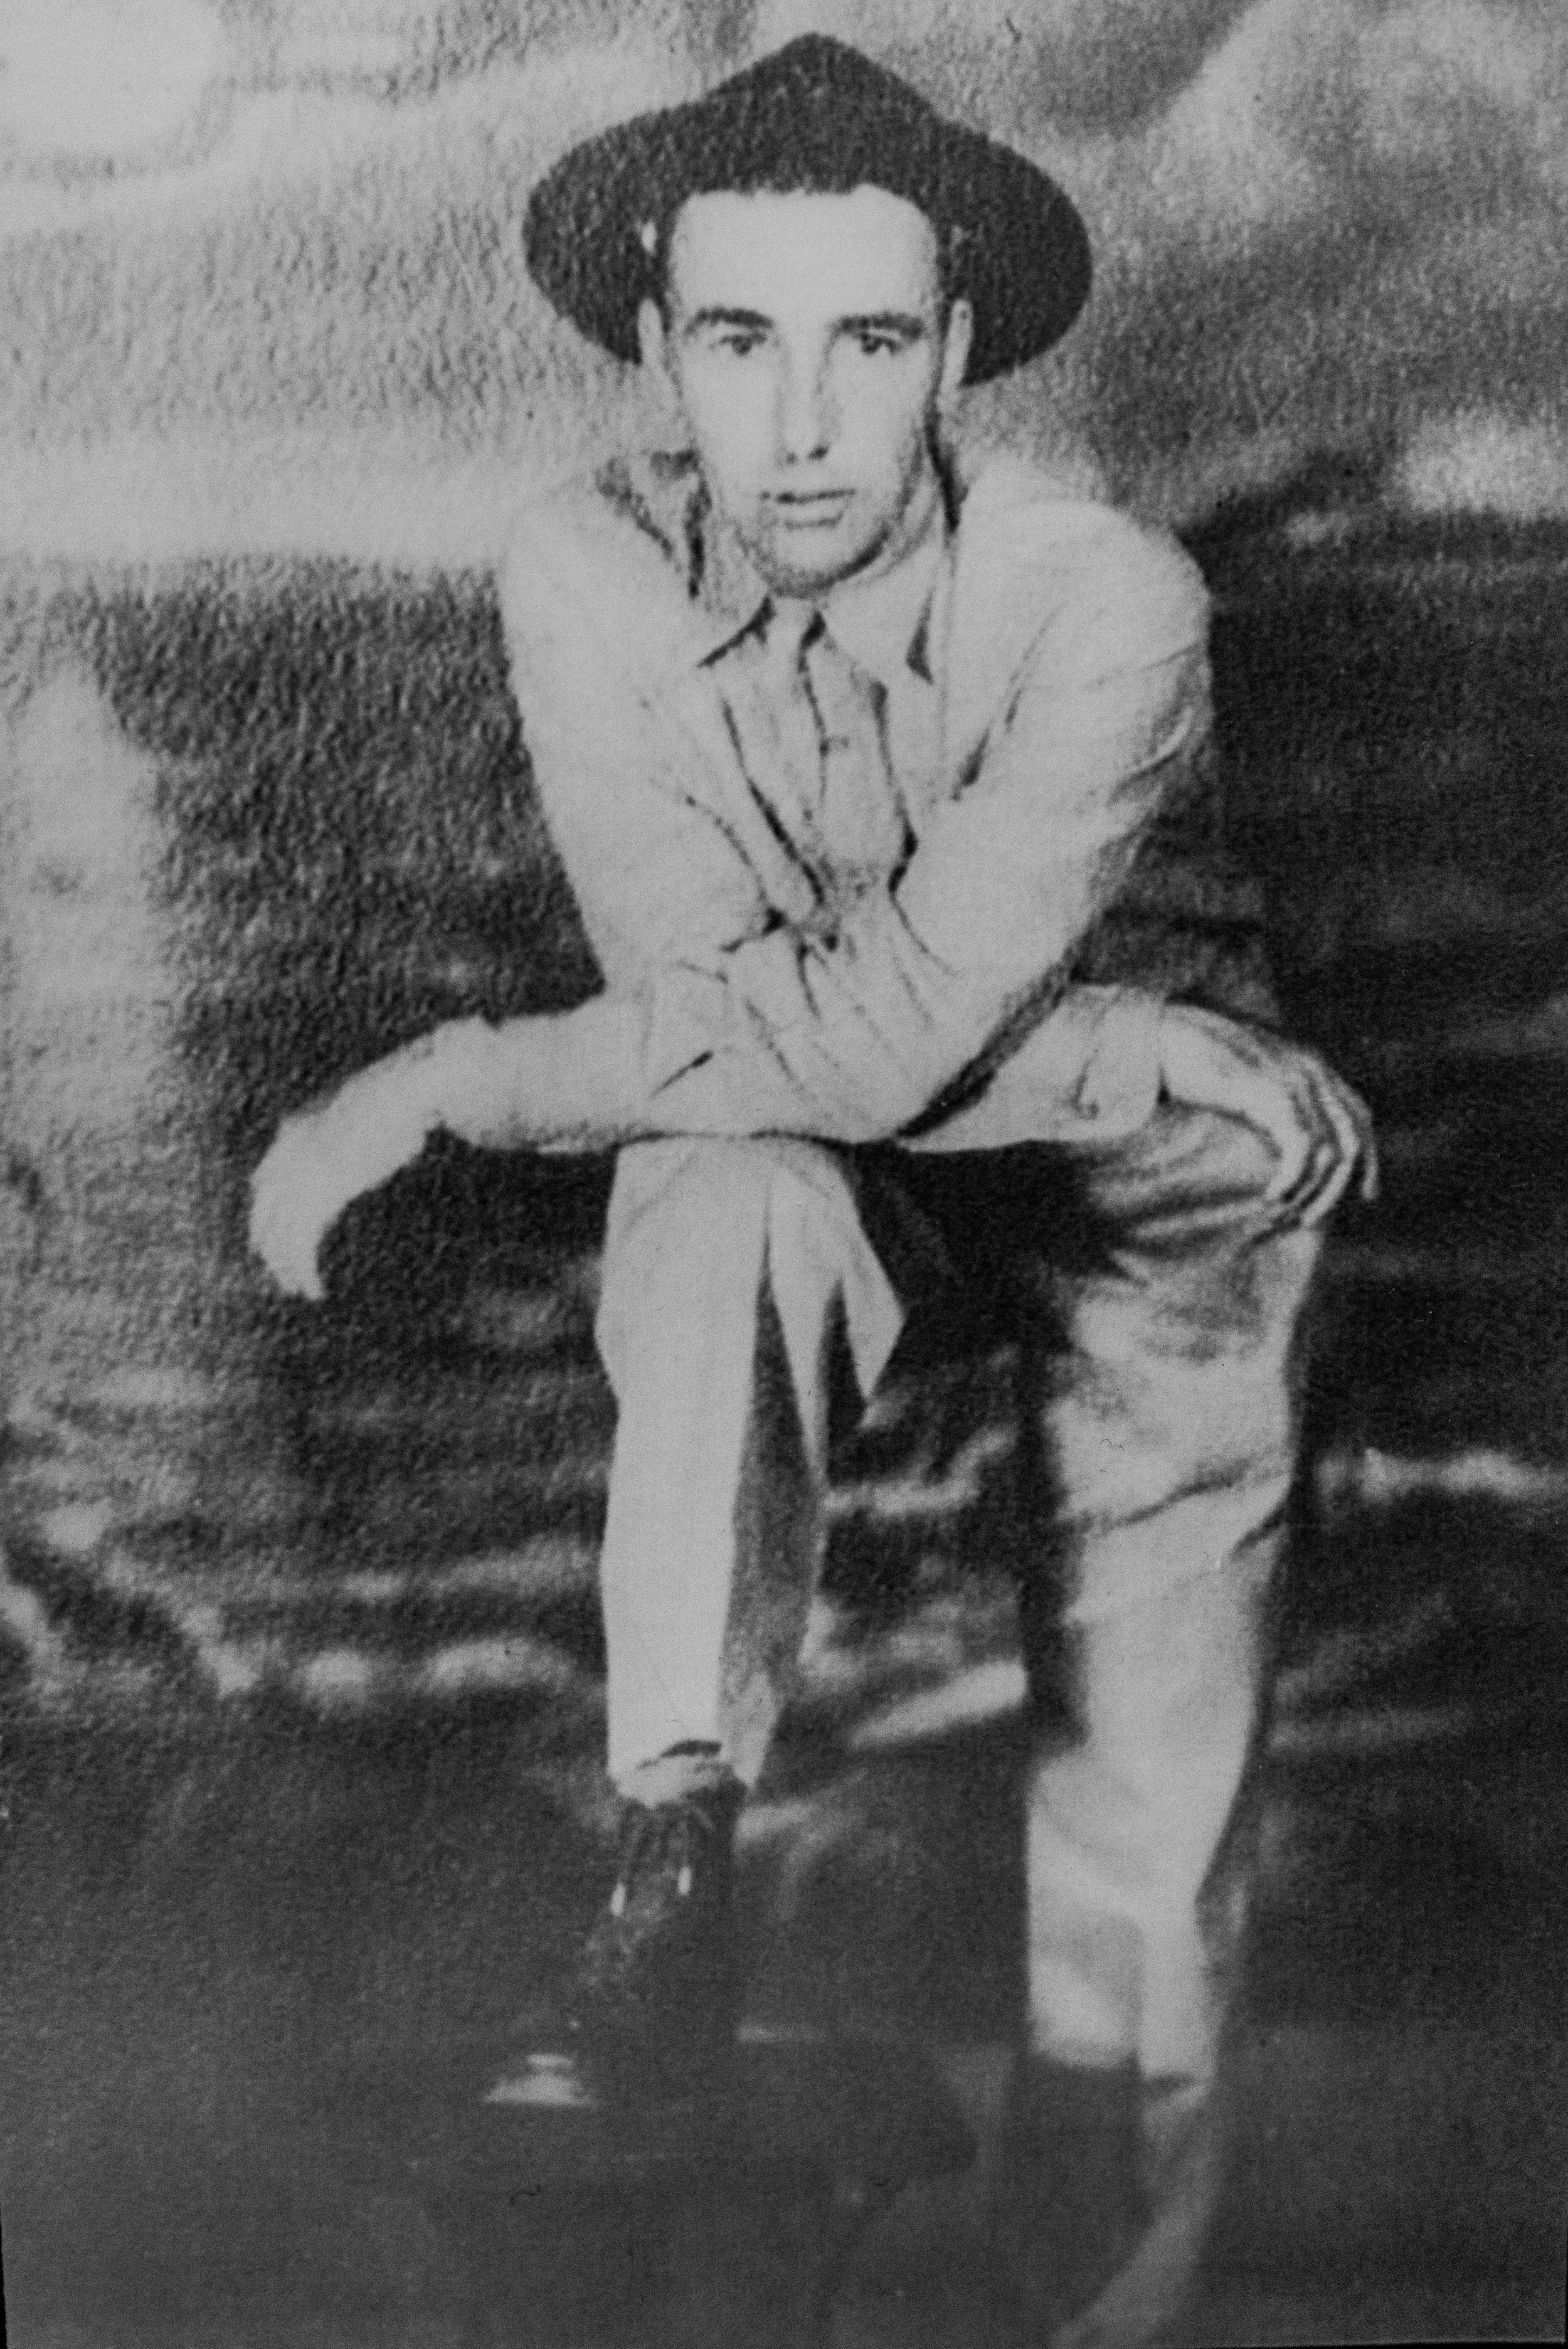 Alfred's brother Claude Haws, shortly before the war. Claude died due to starvation and probably the common diseases that often struck the American captives.